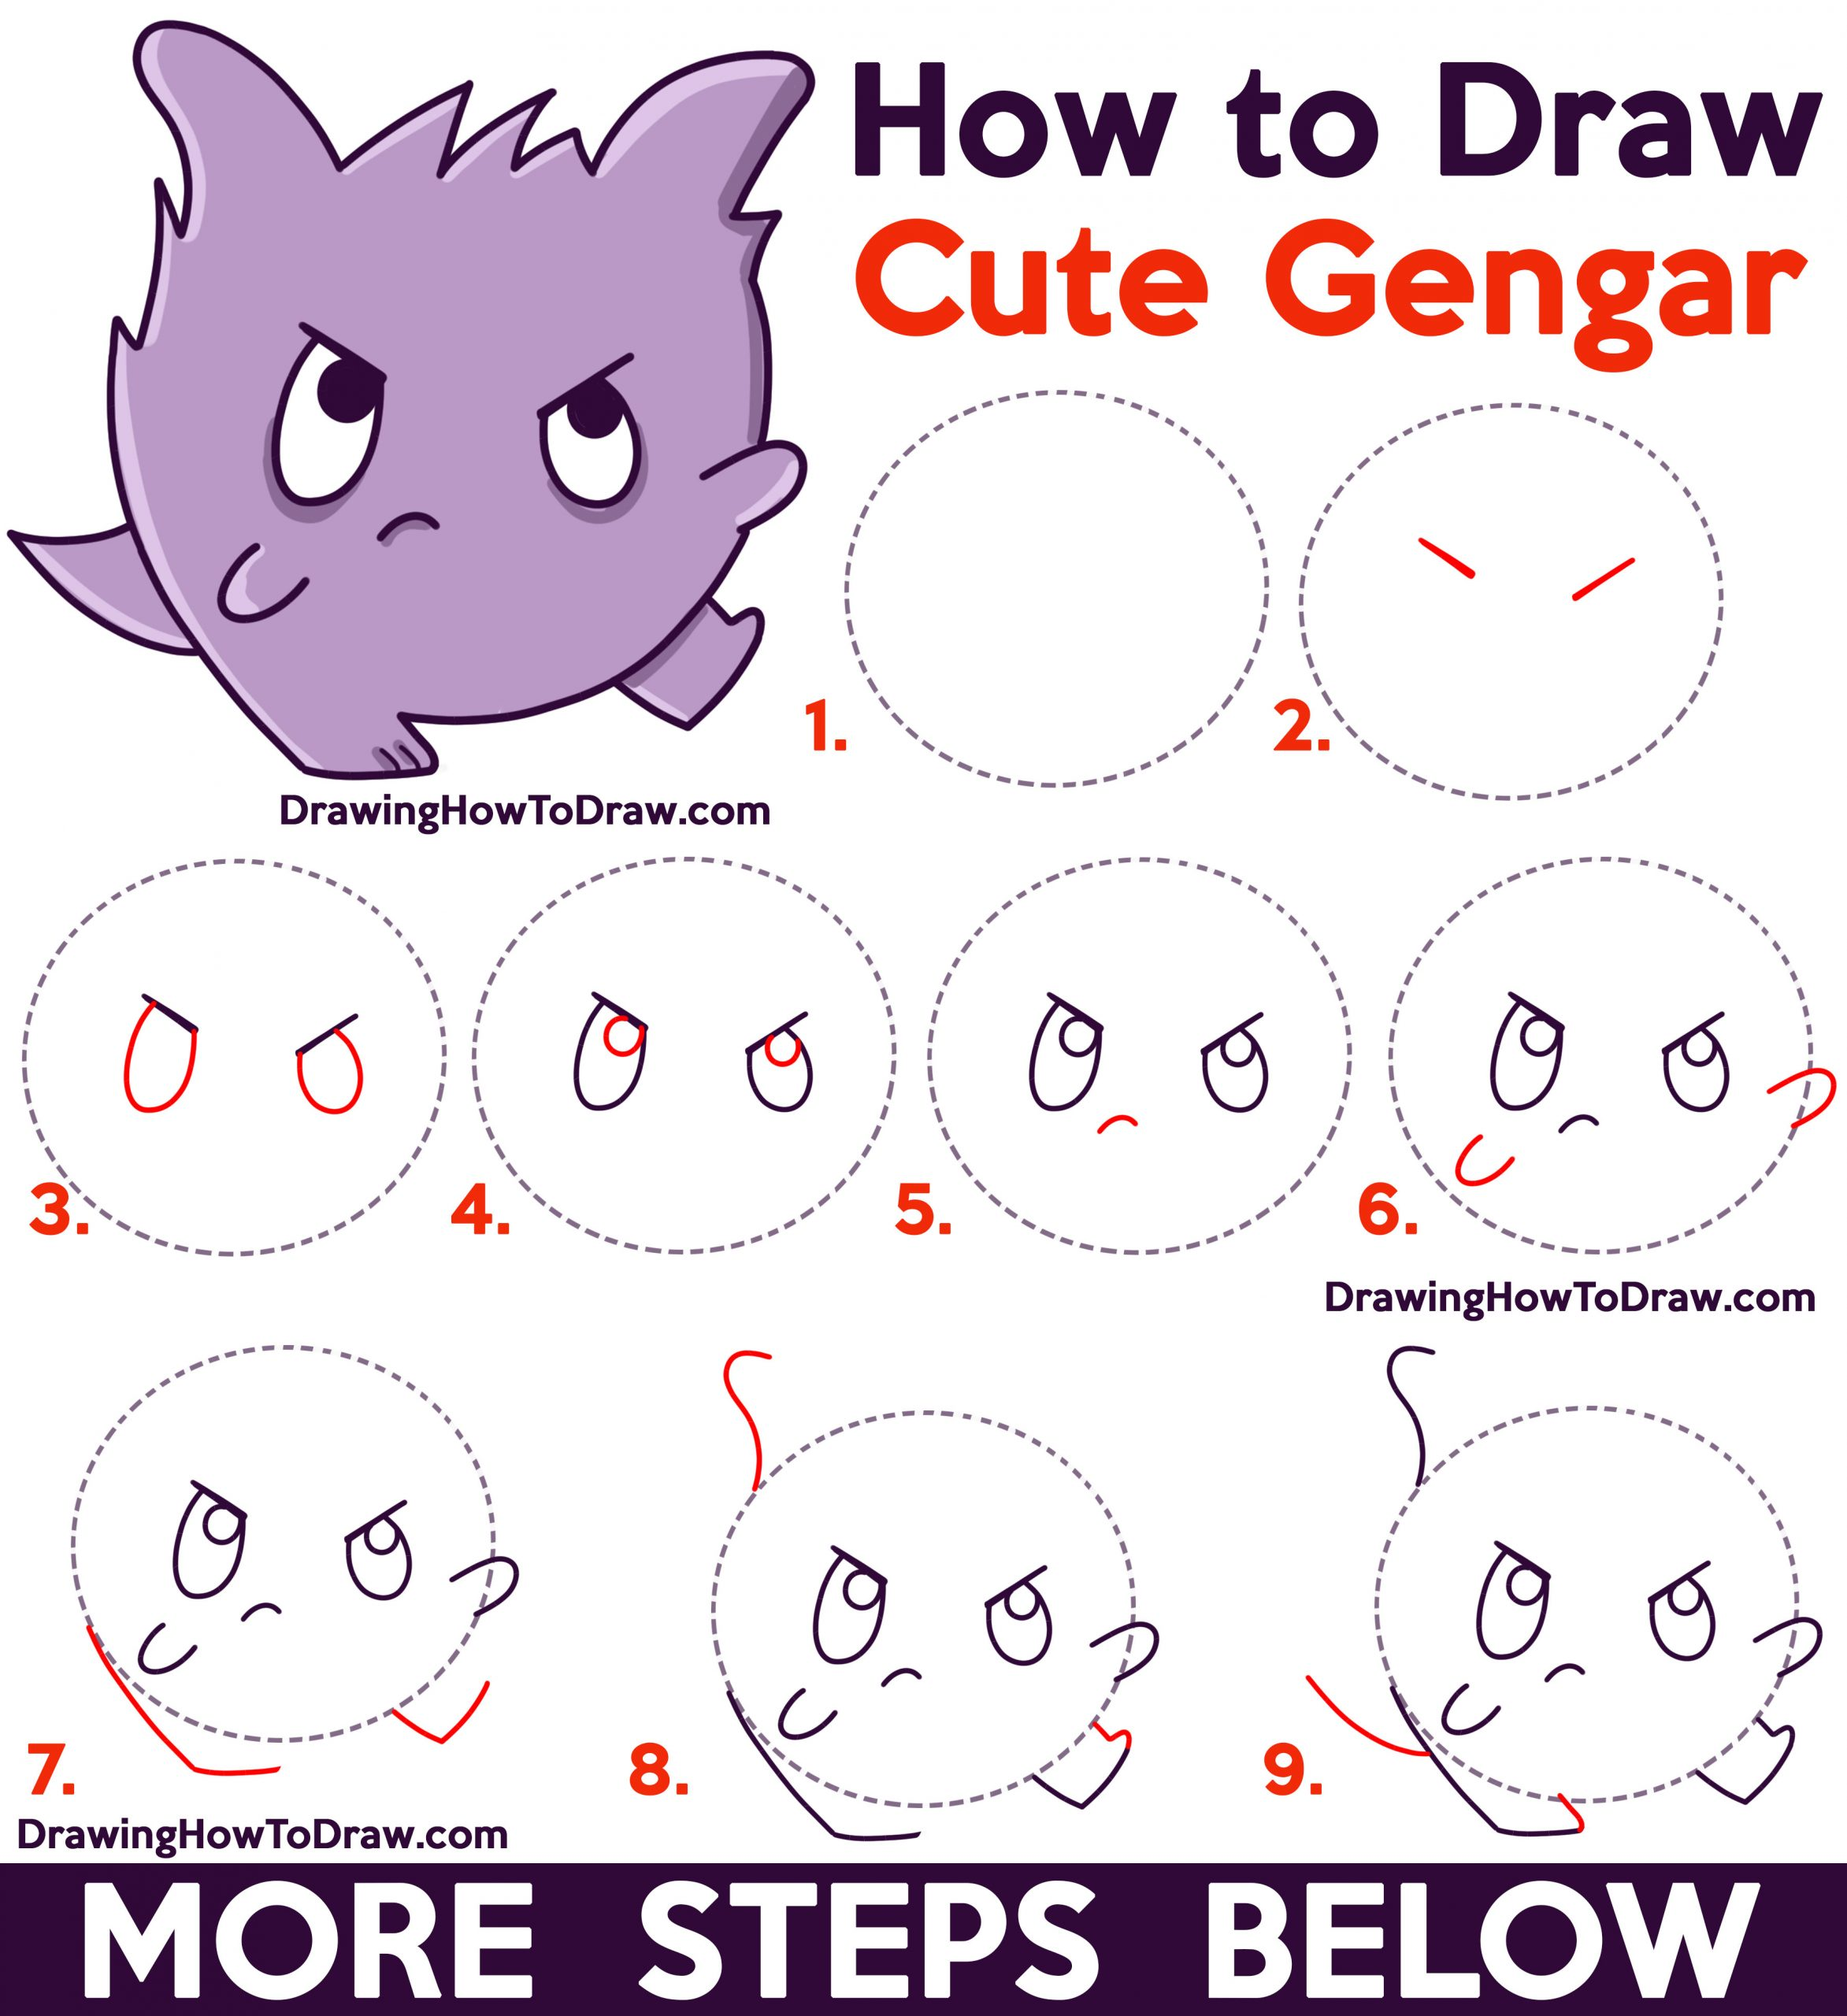 How to Draw a Cute / Kawaii / Chibi Gengar from Pokemon Easy Step by Step Drawing Tutorial for Kids